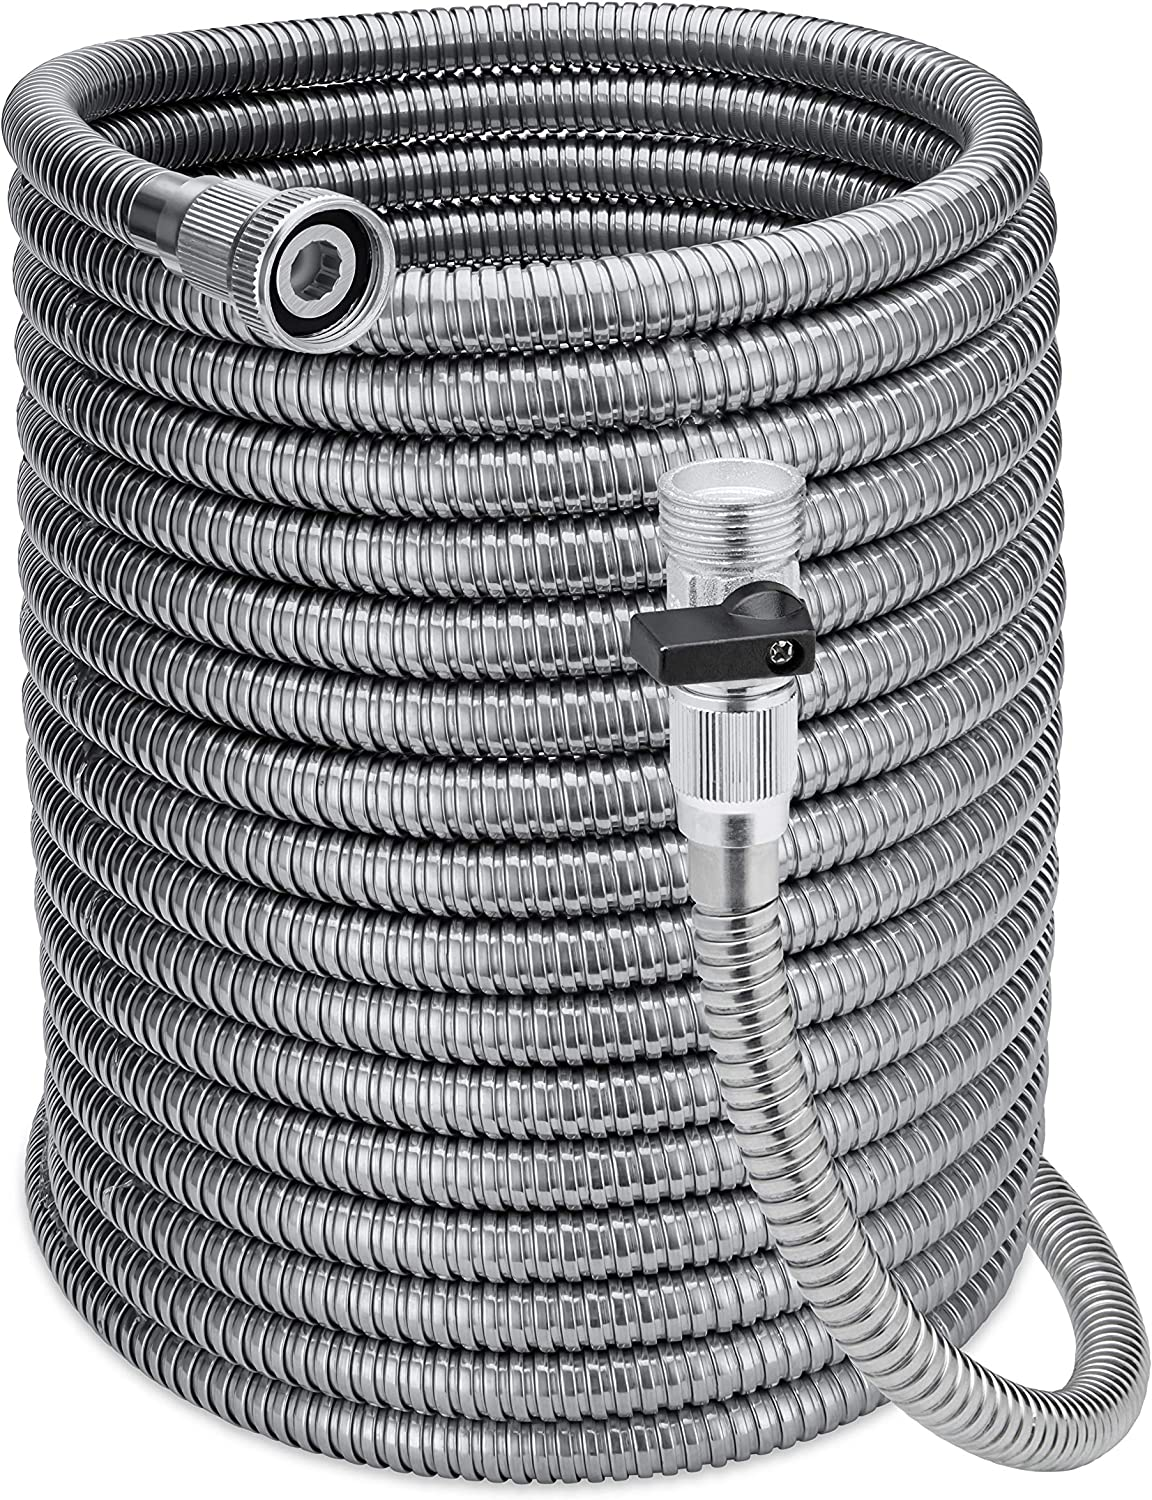 Morvat 50 Foot Stainless Steel Garden Hose with Shut-Off Valve, Garden Hose Stainless Steel 50ft, Resistant to Tangles and Punctures, Heavy Duty Garden Hose 50 FT